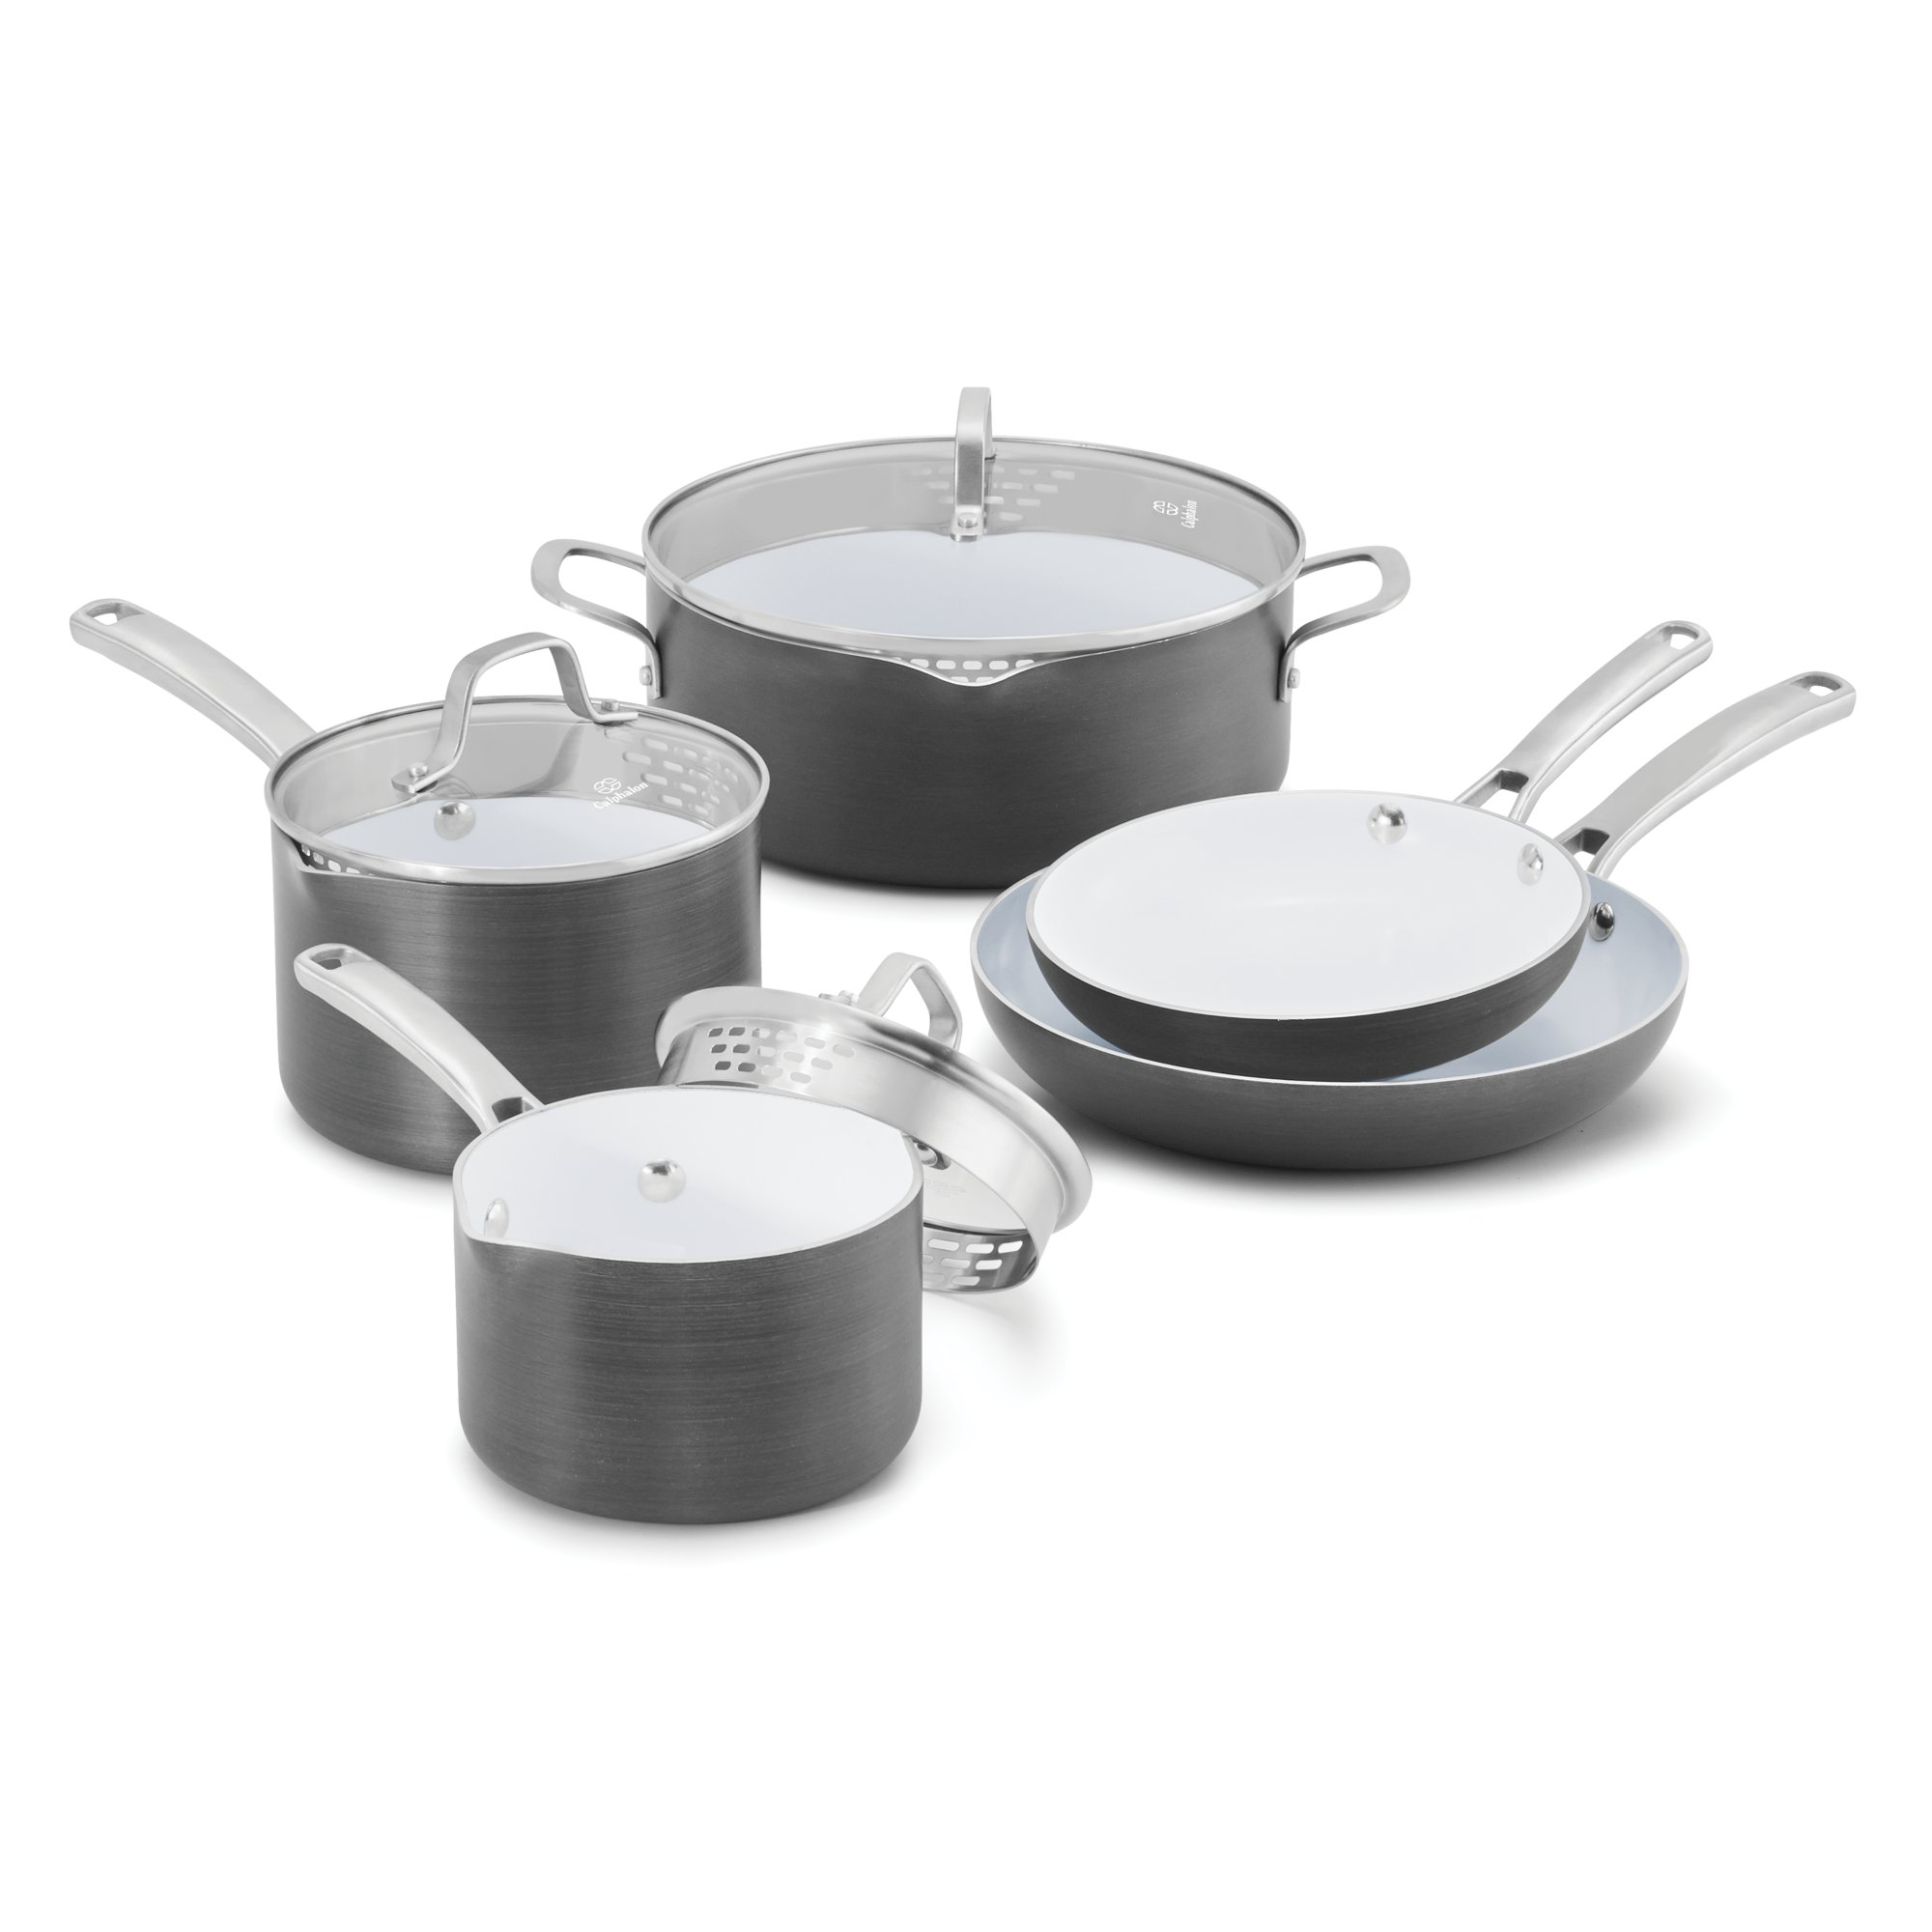 Cookware gt see more select by calphalon ceramic nonstick 8 inch an - The Calphalon Classic Ceramic Nonstick 8 Piece Cookware Set Features Pots And Pans With Convenient Measuring Marks Straining Covers And Pour Spouts